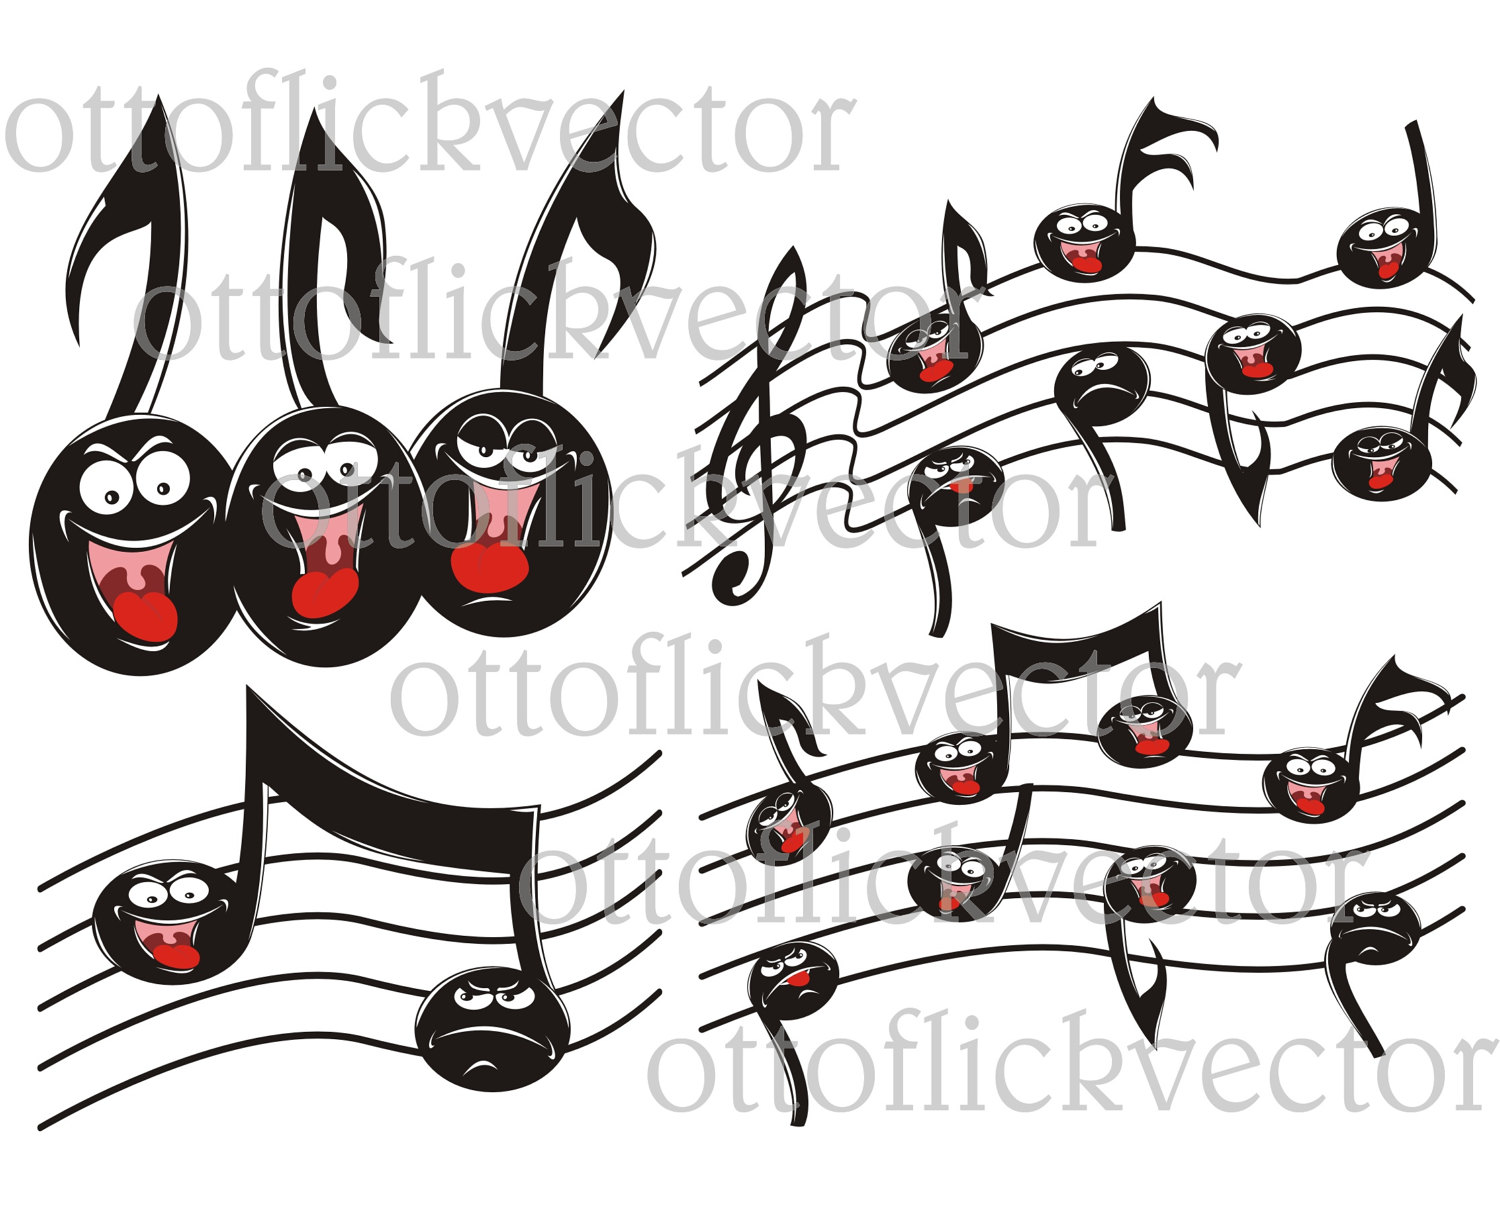 Classical clipart #3, Download drawings